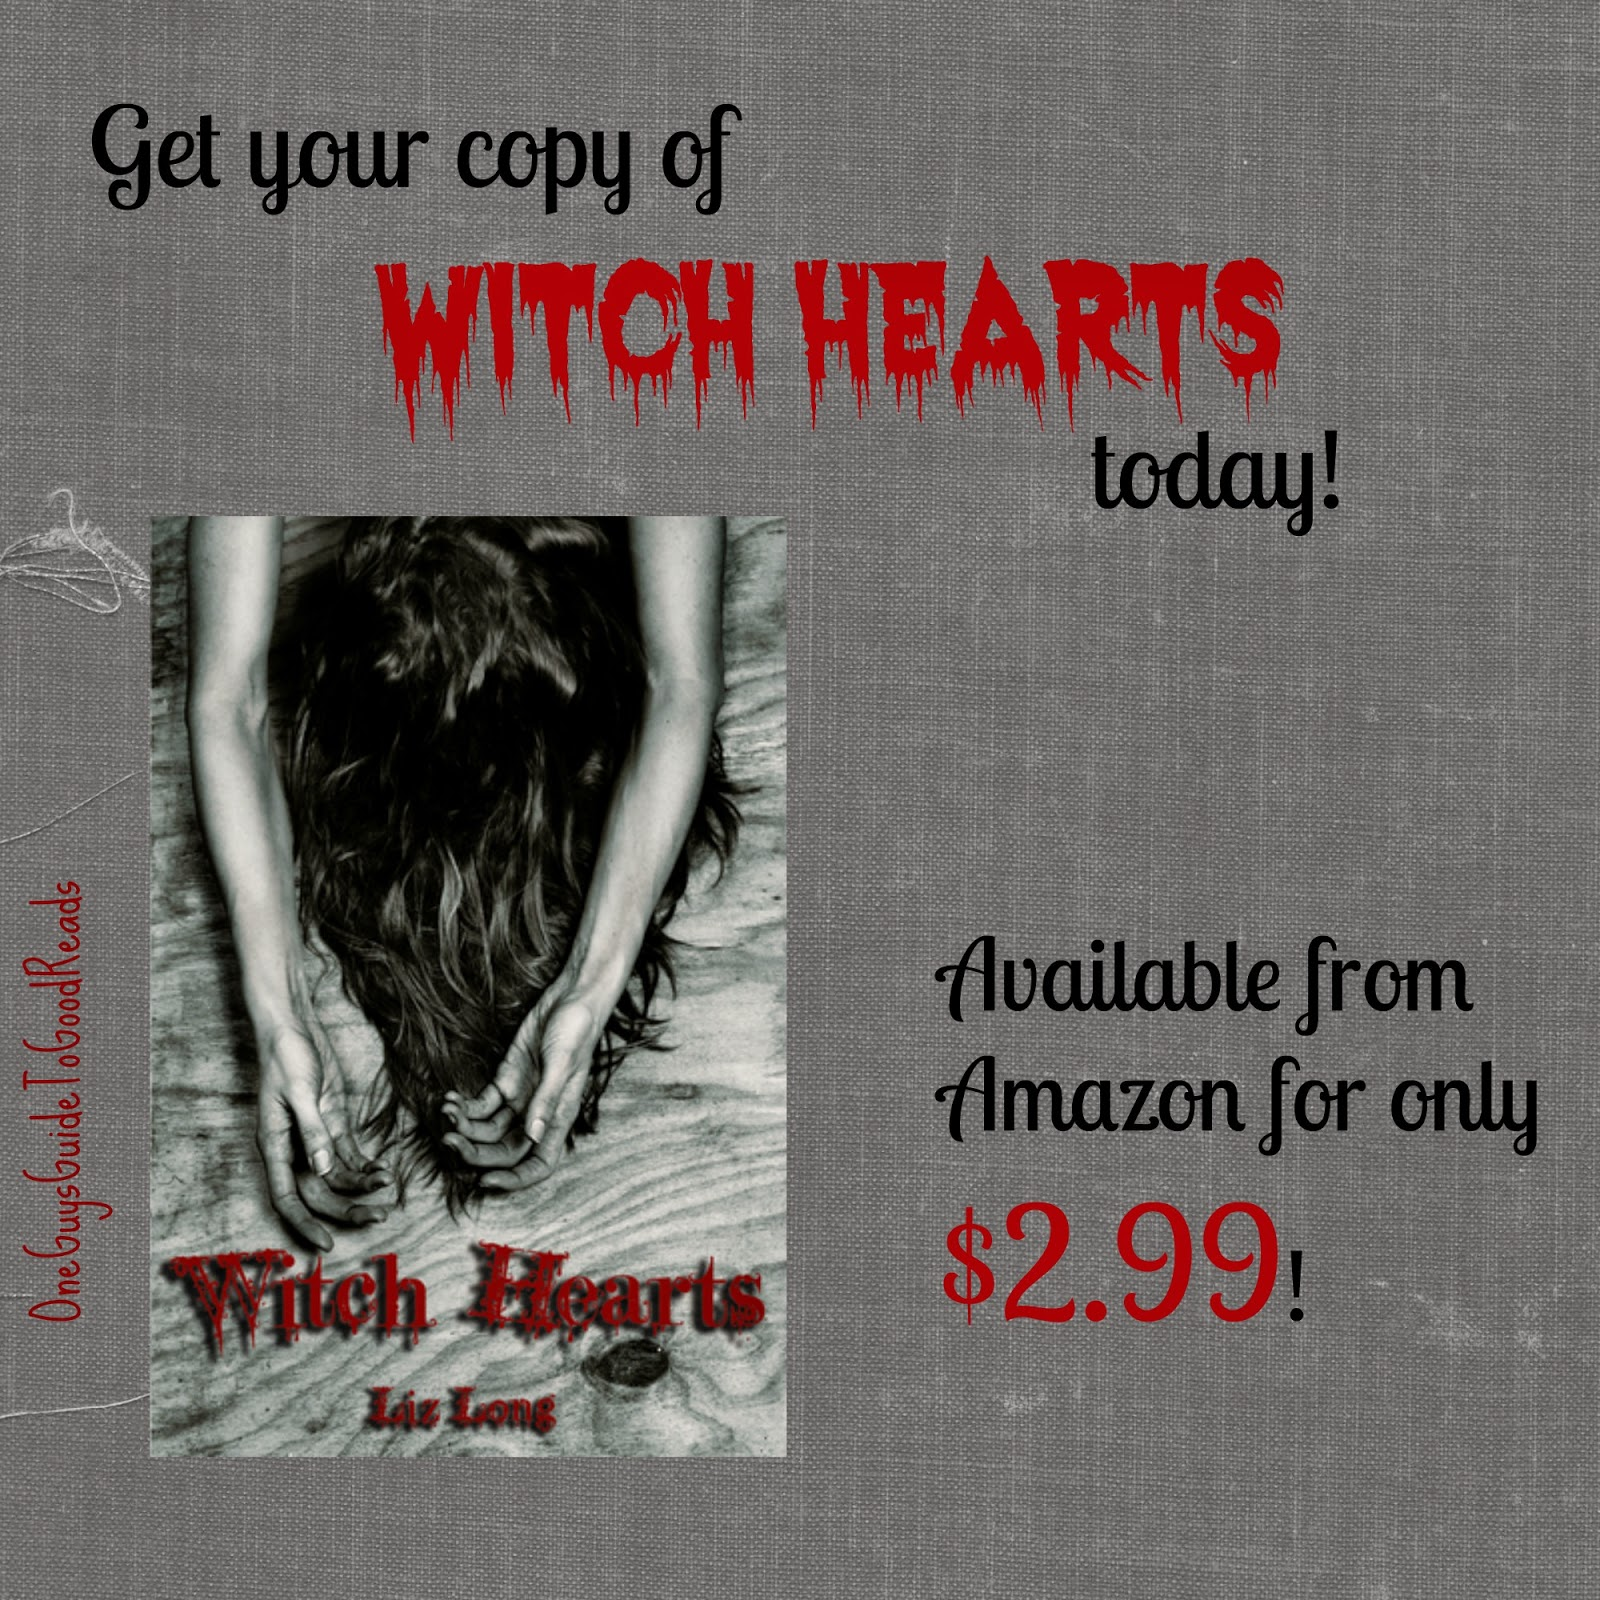 http://www.amazon.com/Witch-Hearts-Liz-Long-ebook/dp/B00CIKKEV0